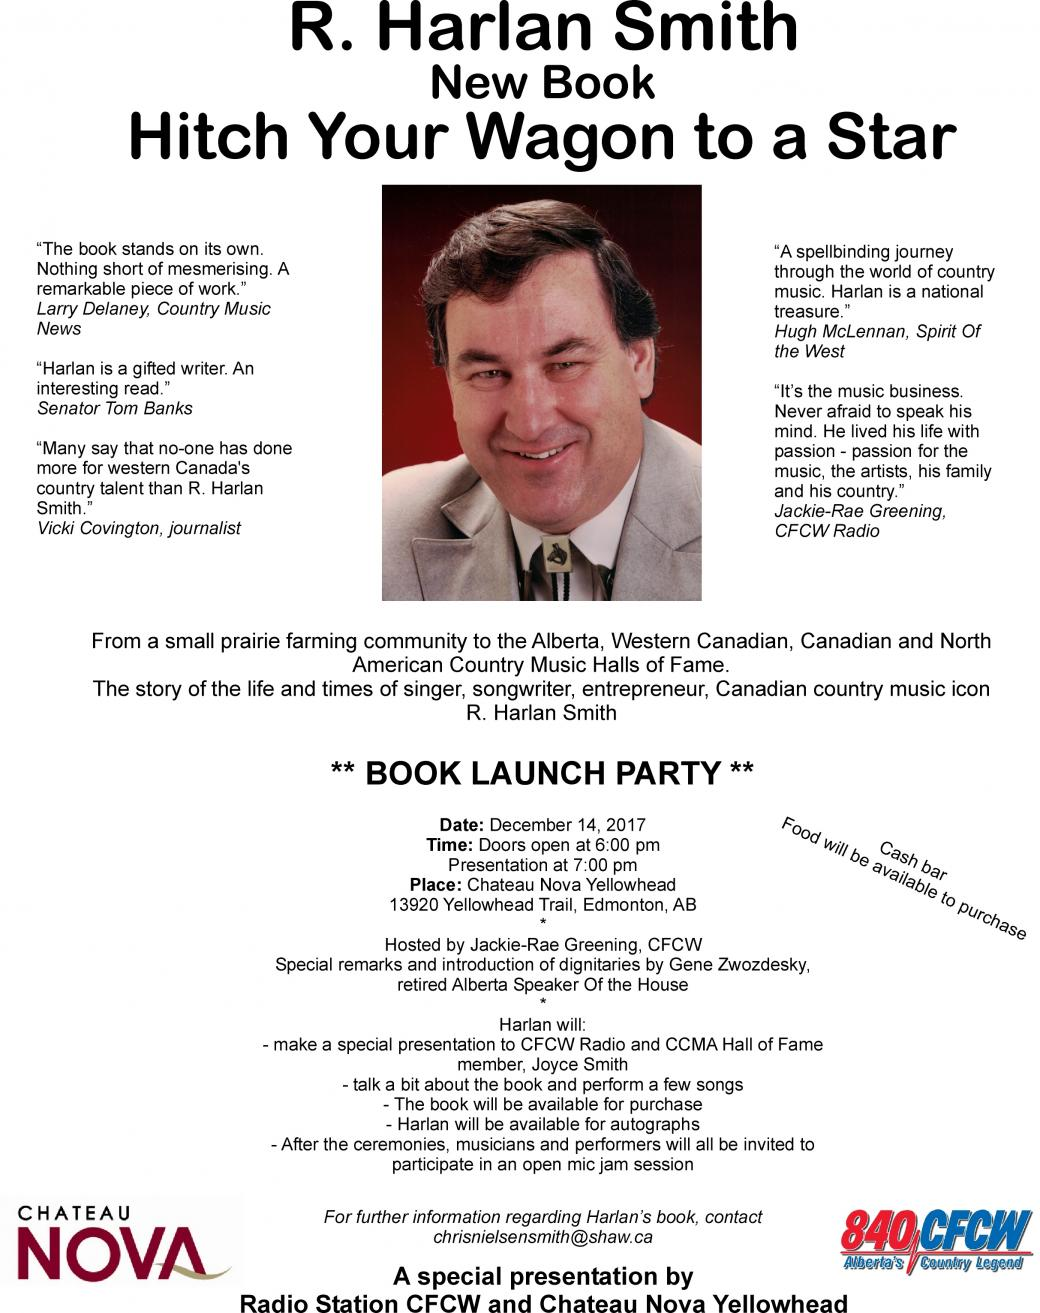 Book Launch: Hitch Your Wagon to a Star by R. Harlan Smith